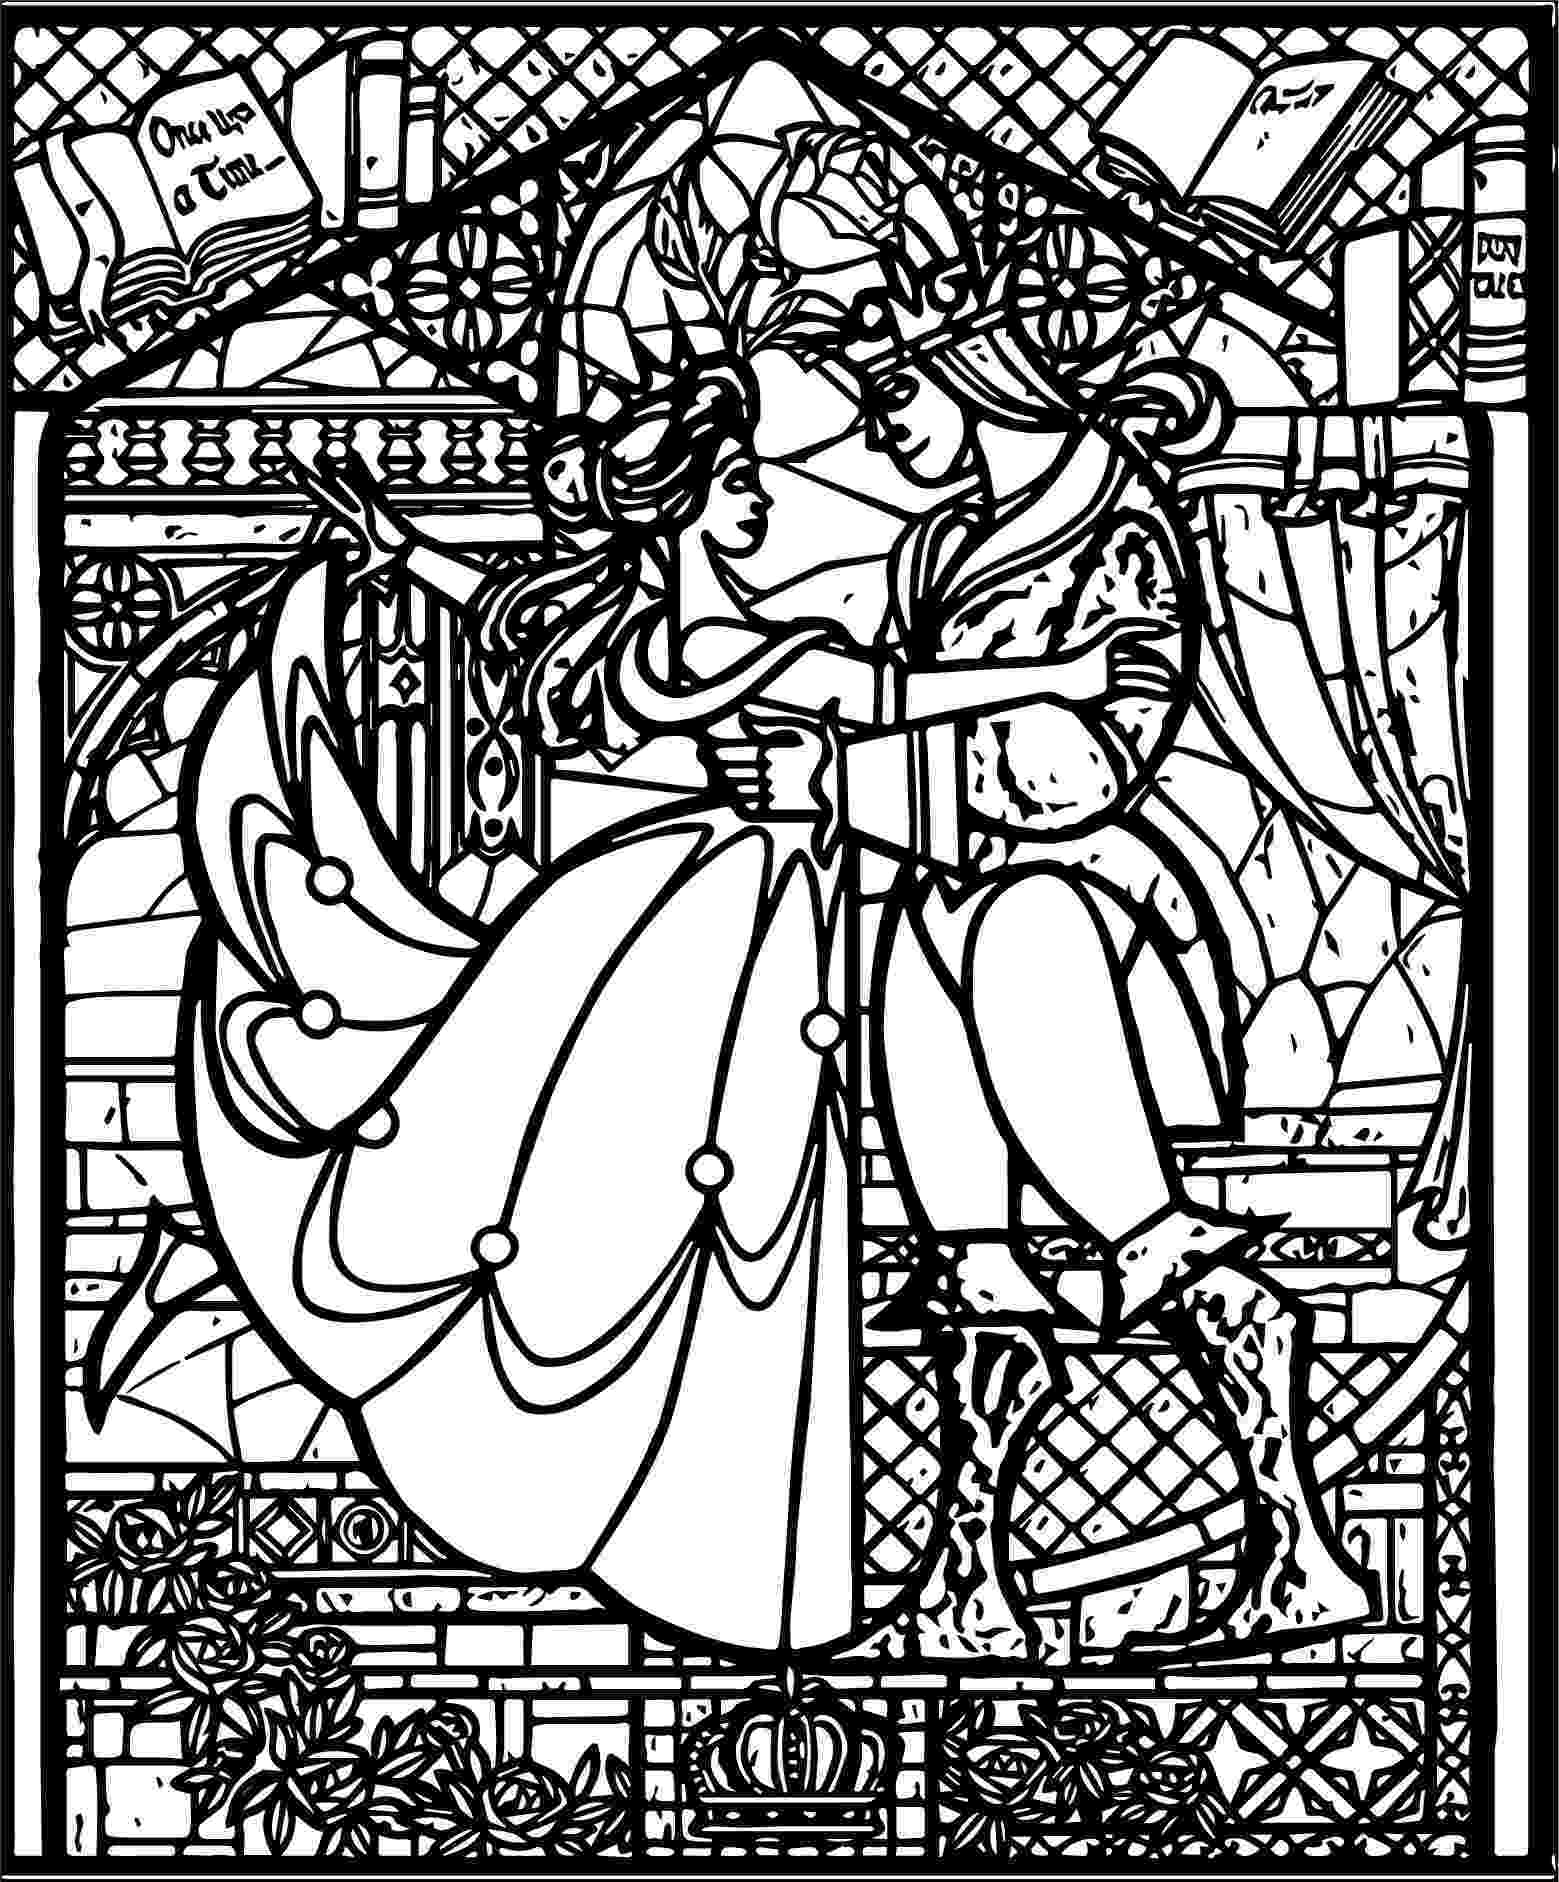 stained glass pictures to color 10 best images about download coloring pages on color pictures glass to stained